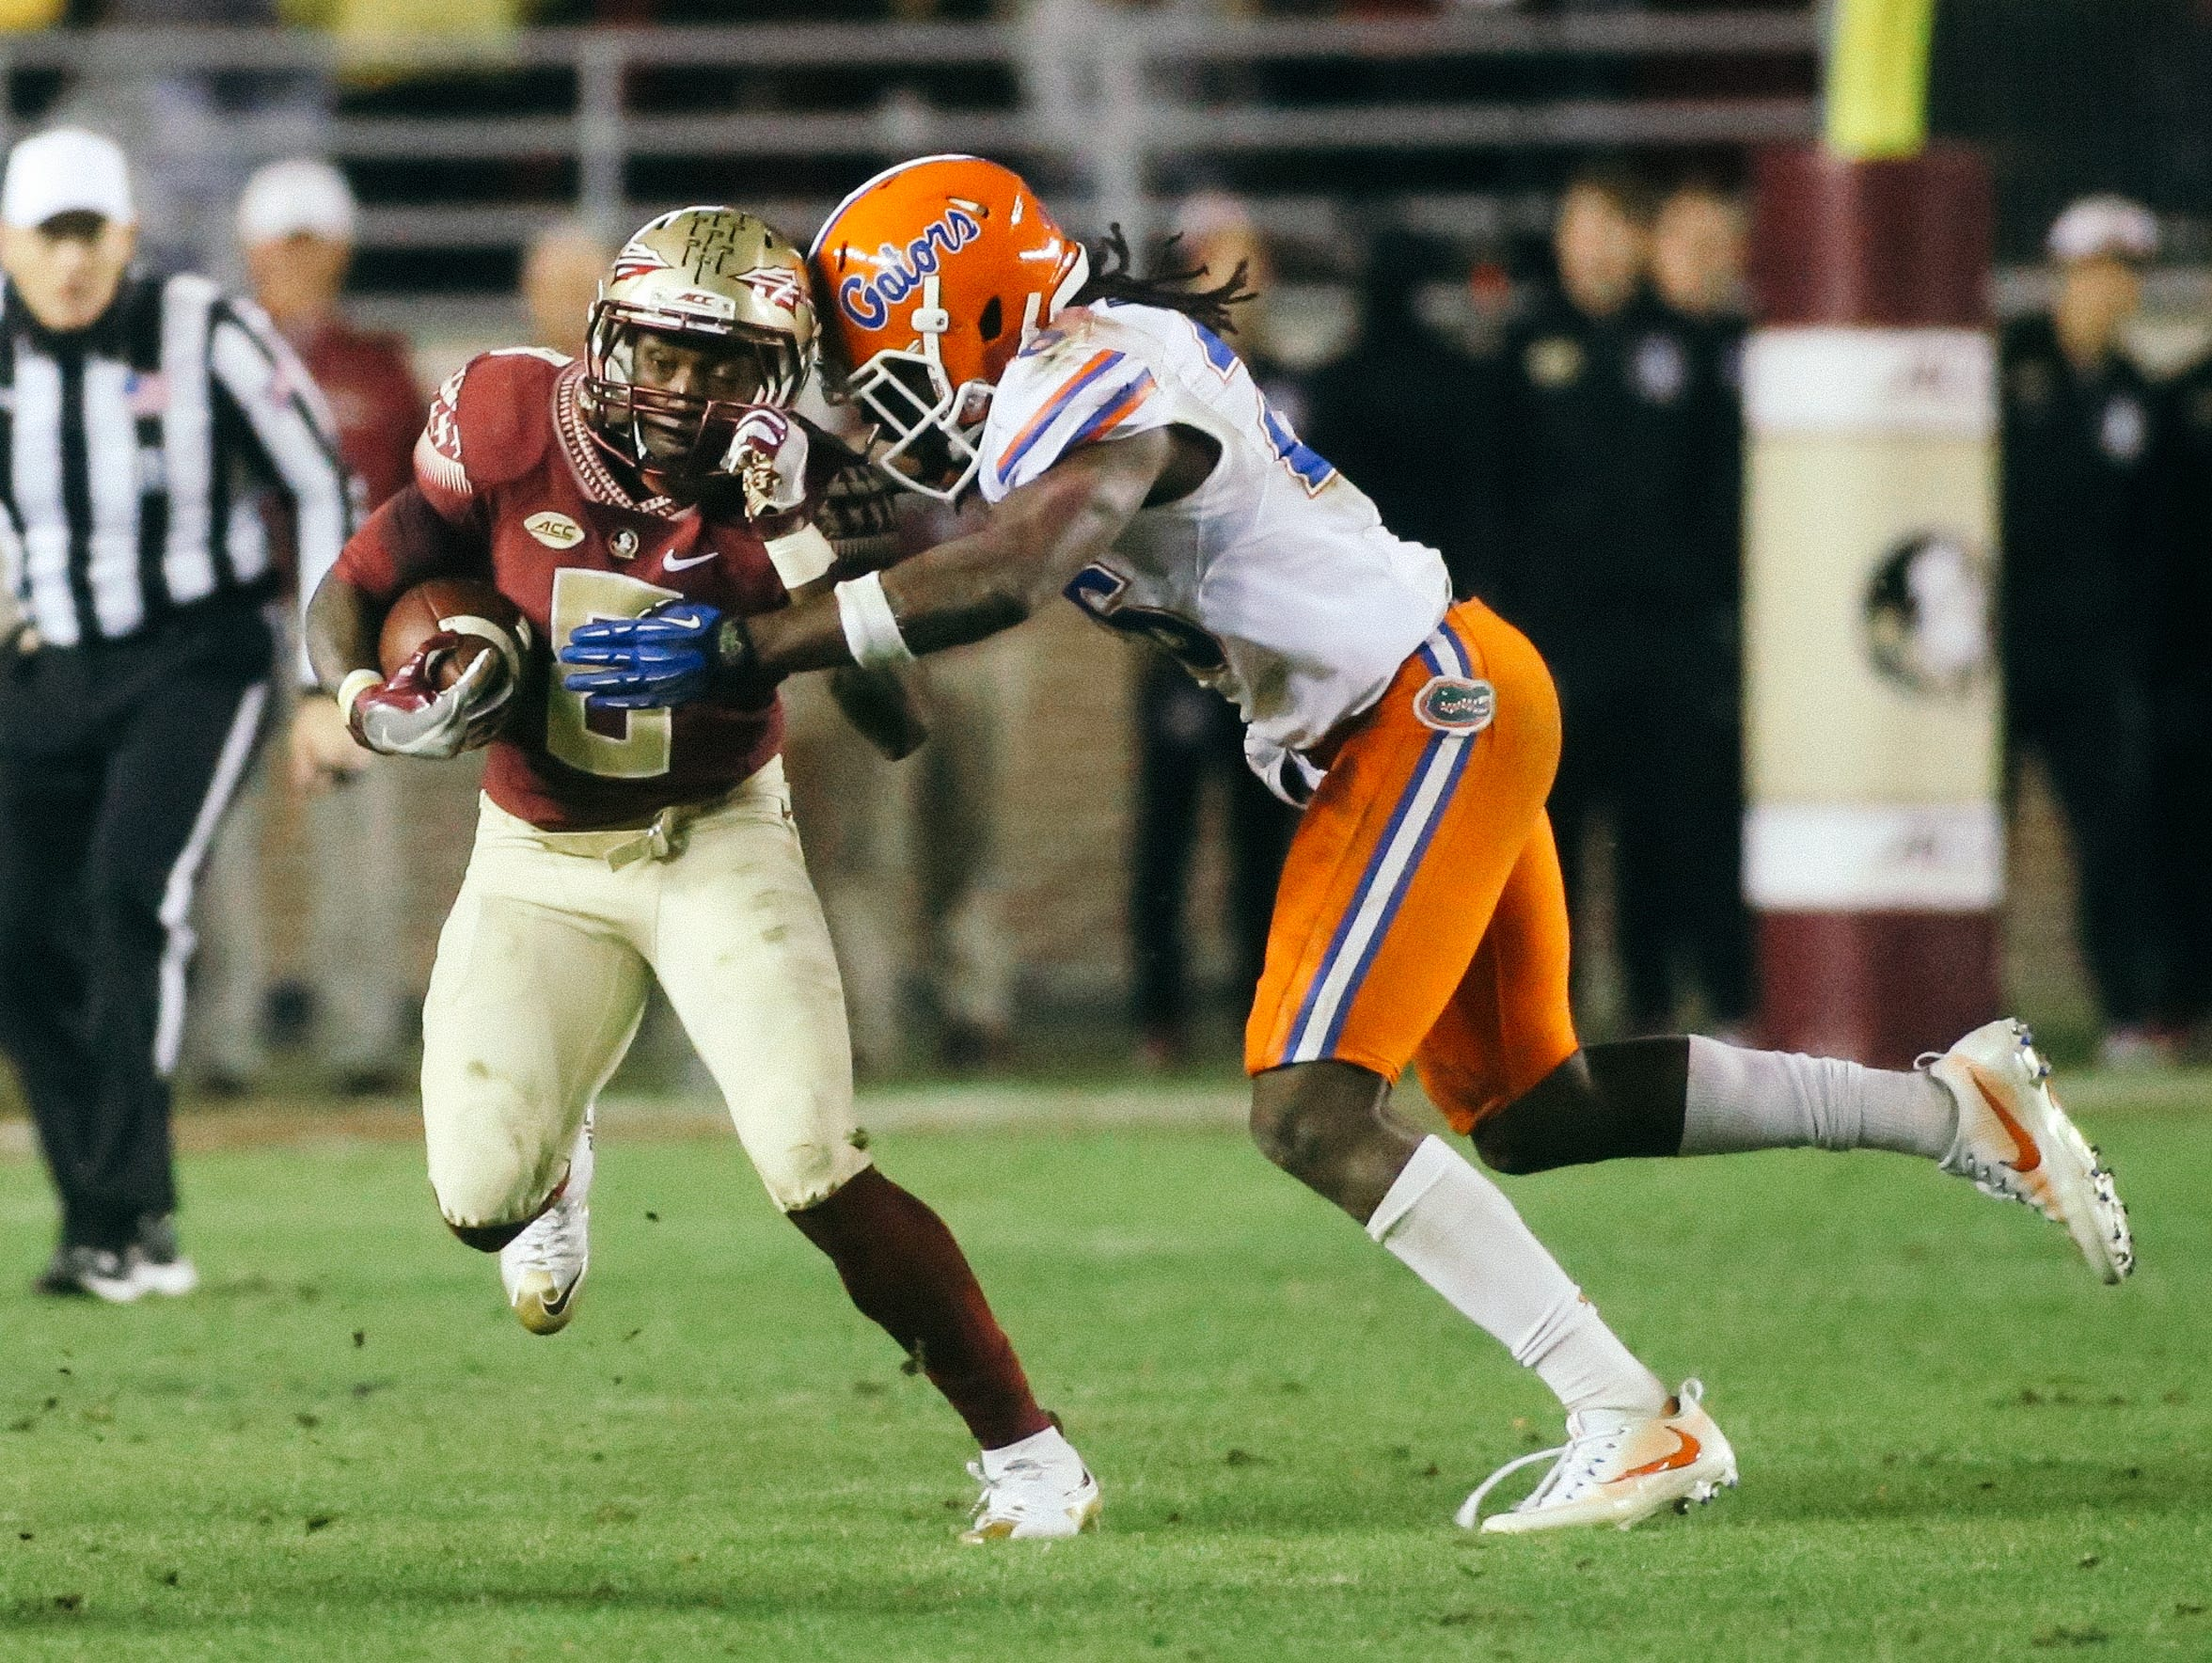 Kermit Whitfield (8) is tackled by Marcell Harris (26)